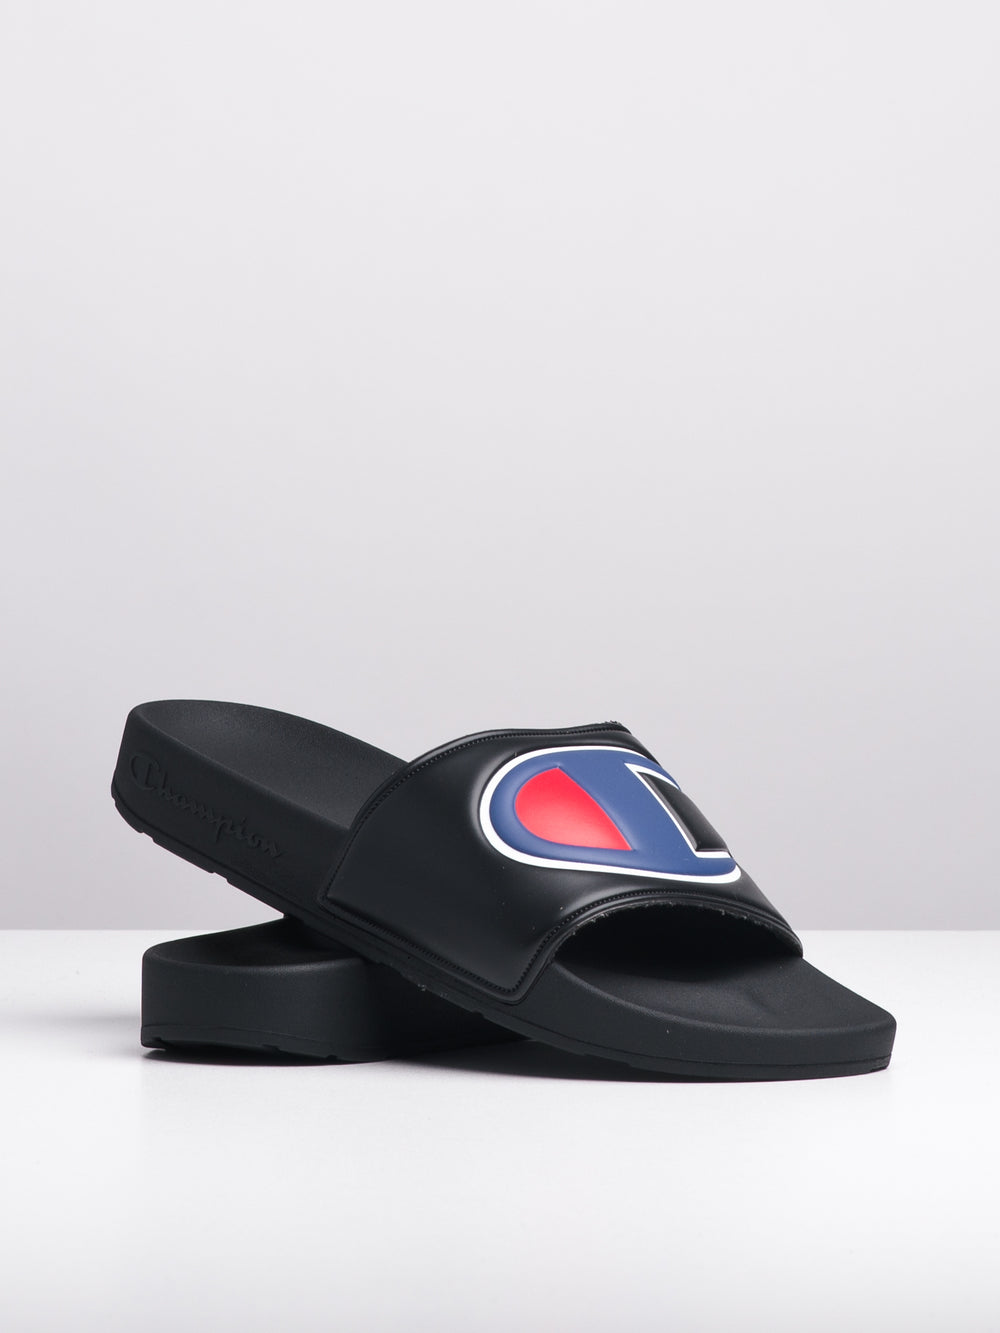 WOMENS IPO - BLACK SLIDES